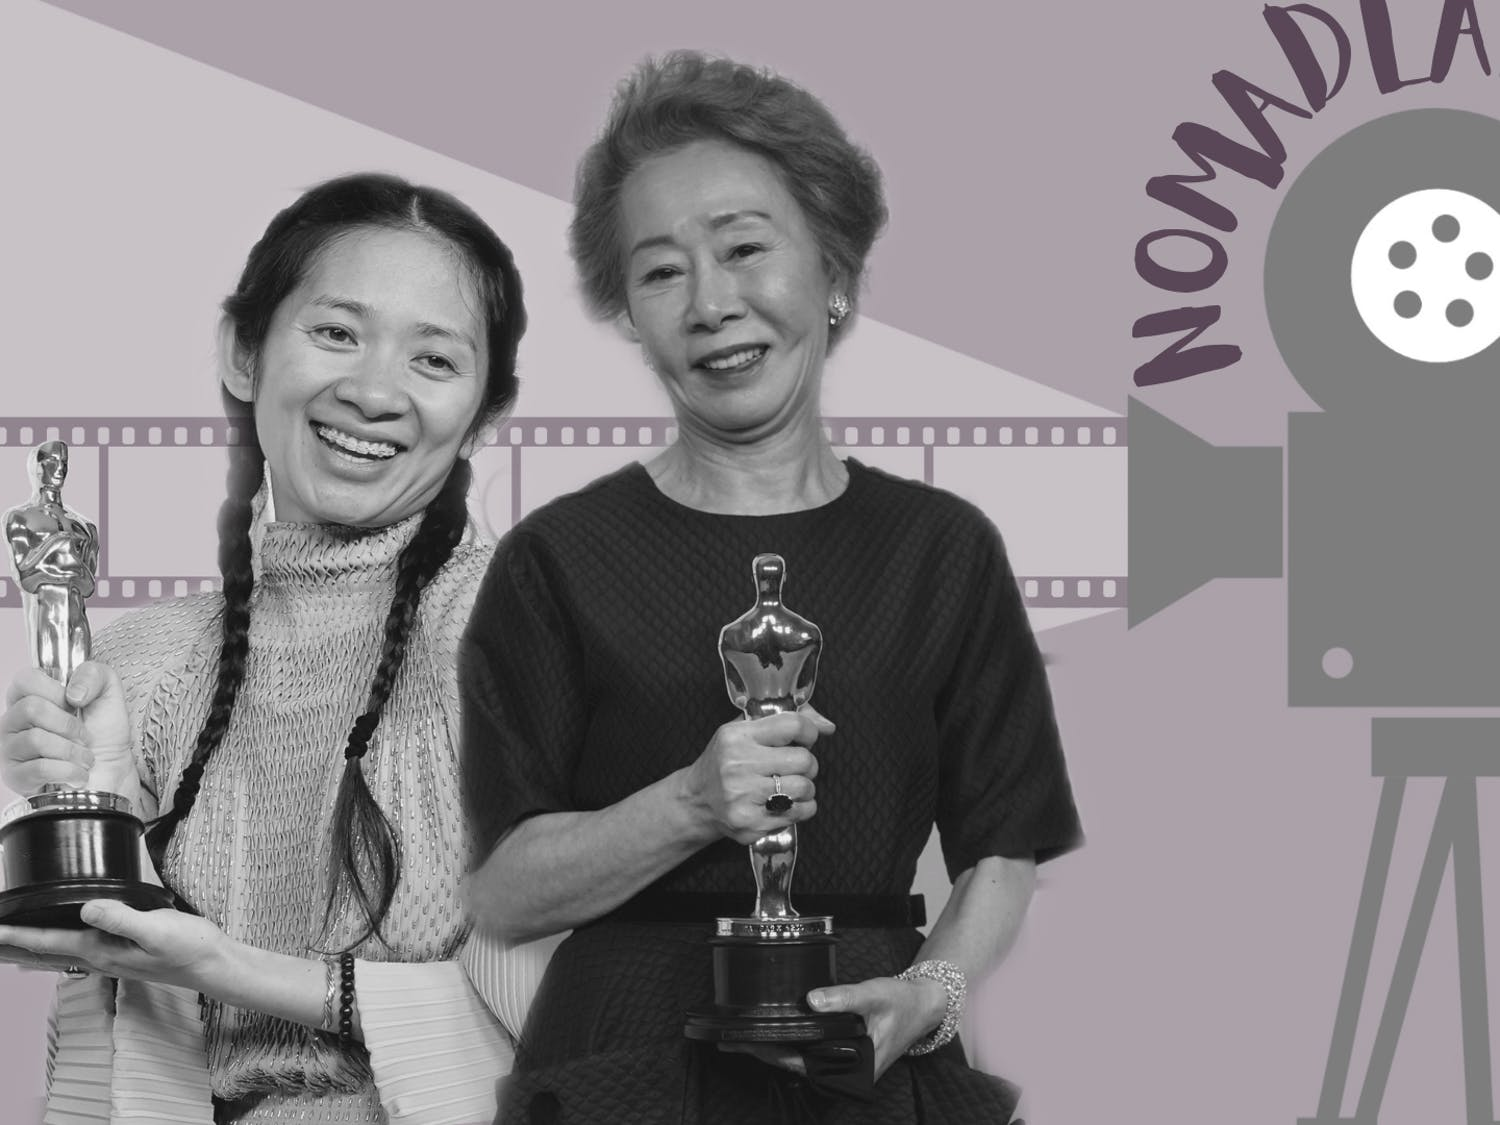 """At the 93rd Academy Awards, """"Nomadland"""" director Chloe Zhao became the first Chinese woman and woman of color to receive the award for best director. Youn Yuh-jung, for her role as the spirited grandmother in """"Minari,"""" became the first Korean woman to win best supporting actress."""